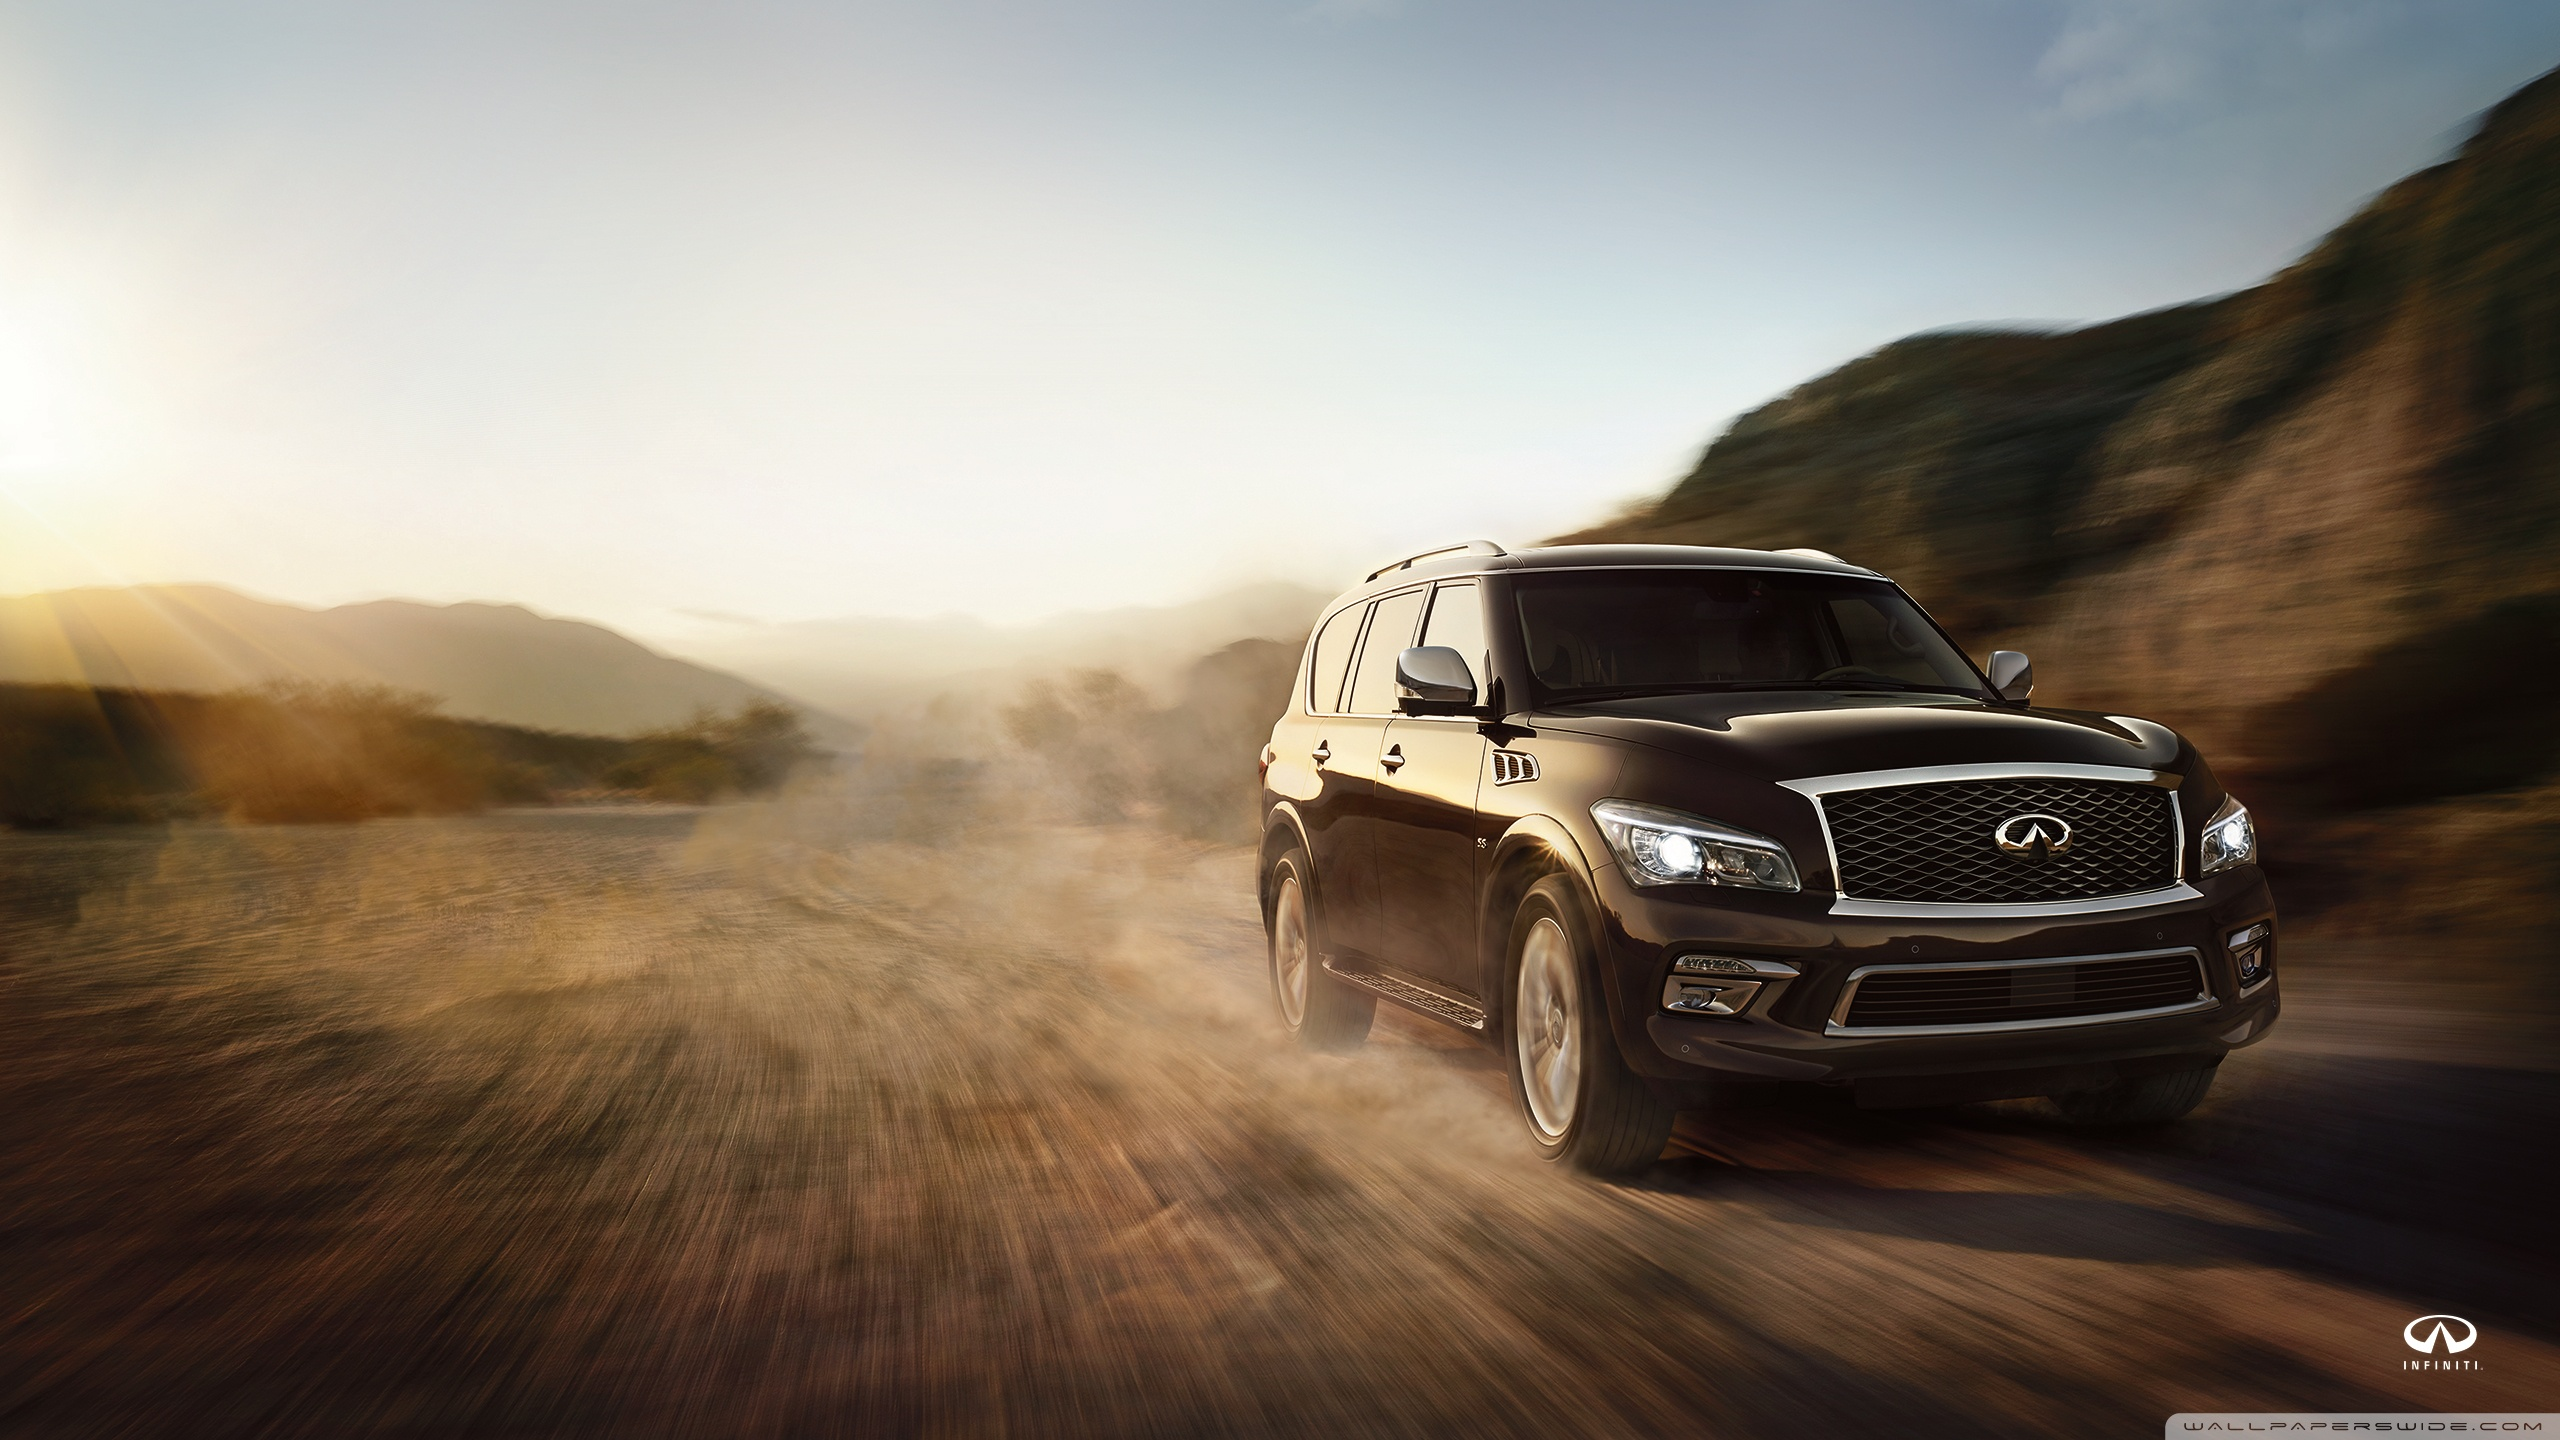 2560x1440 - Infiniti QX80 Wallpapers 6